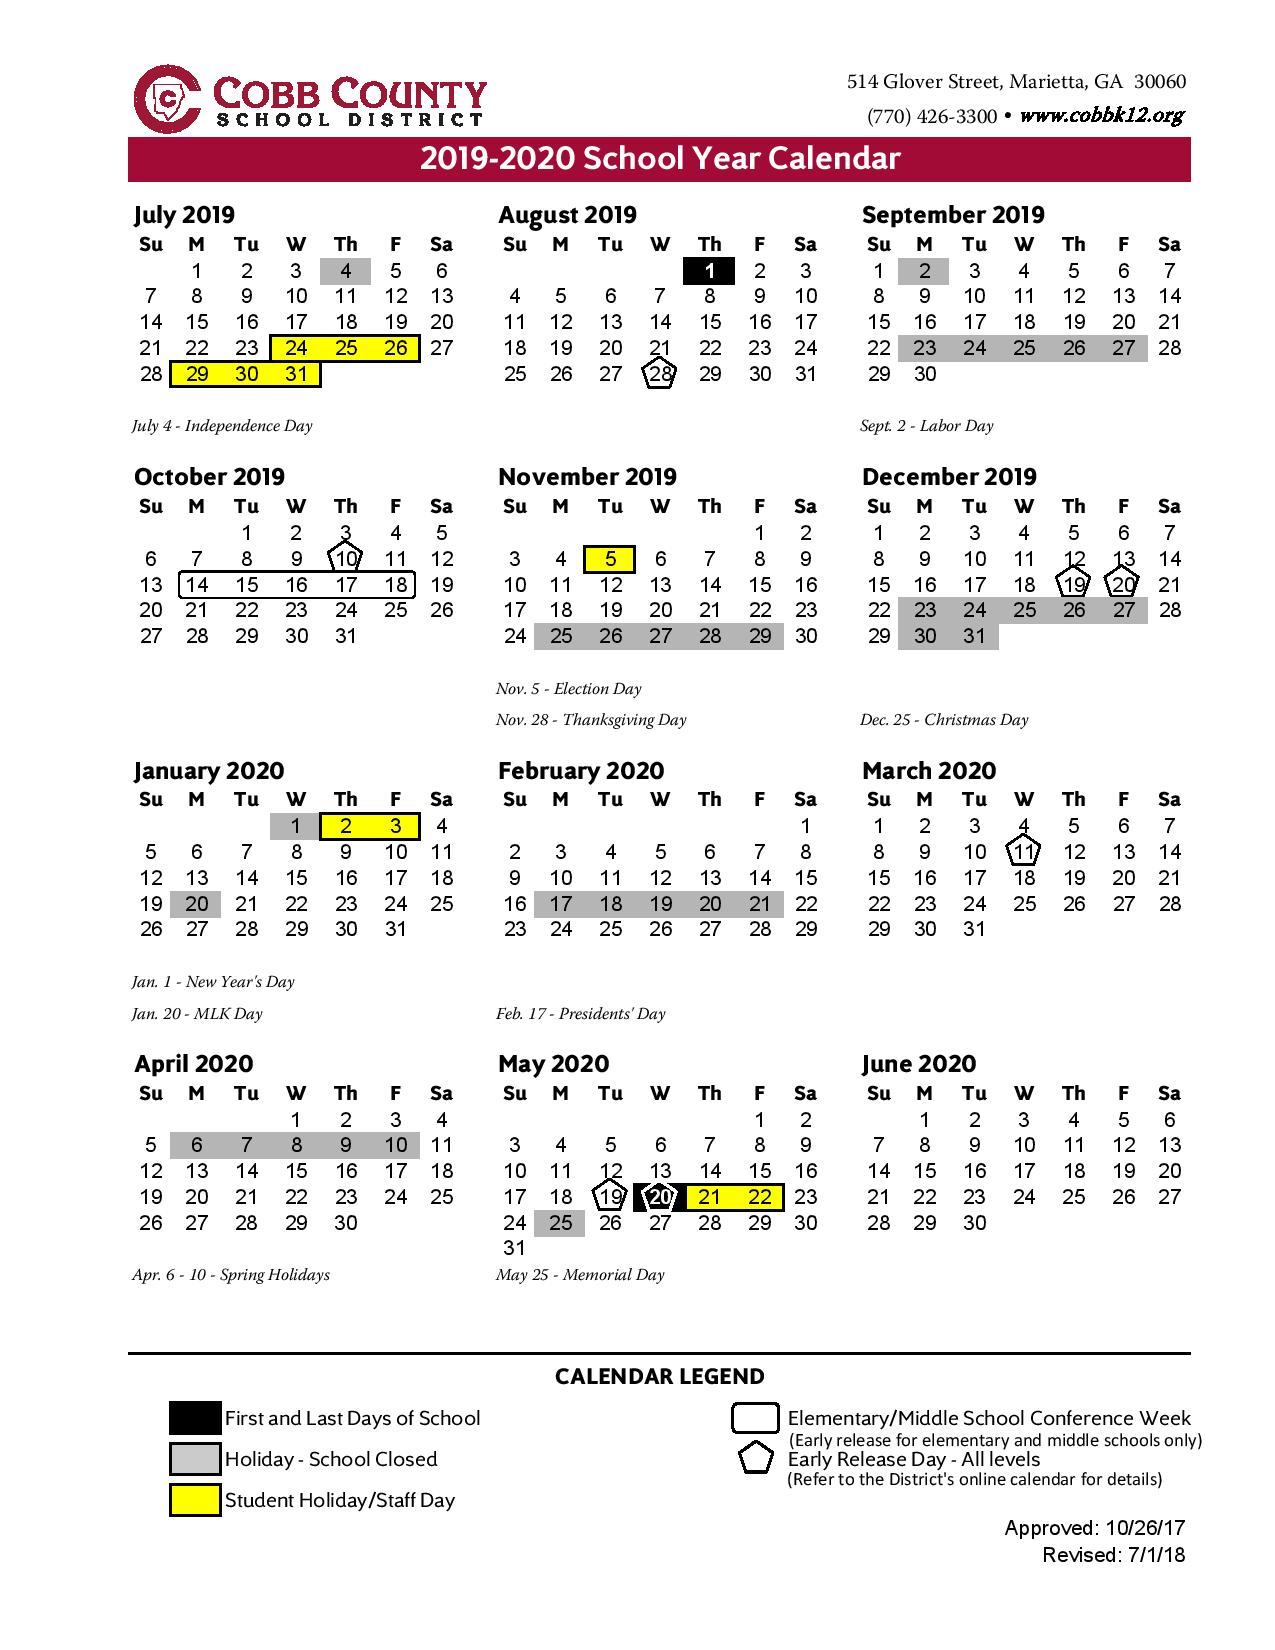 Ccsd School Calendar With Holidays Free Intended For Year Round School Calendar Sample